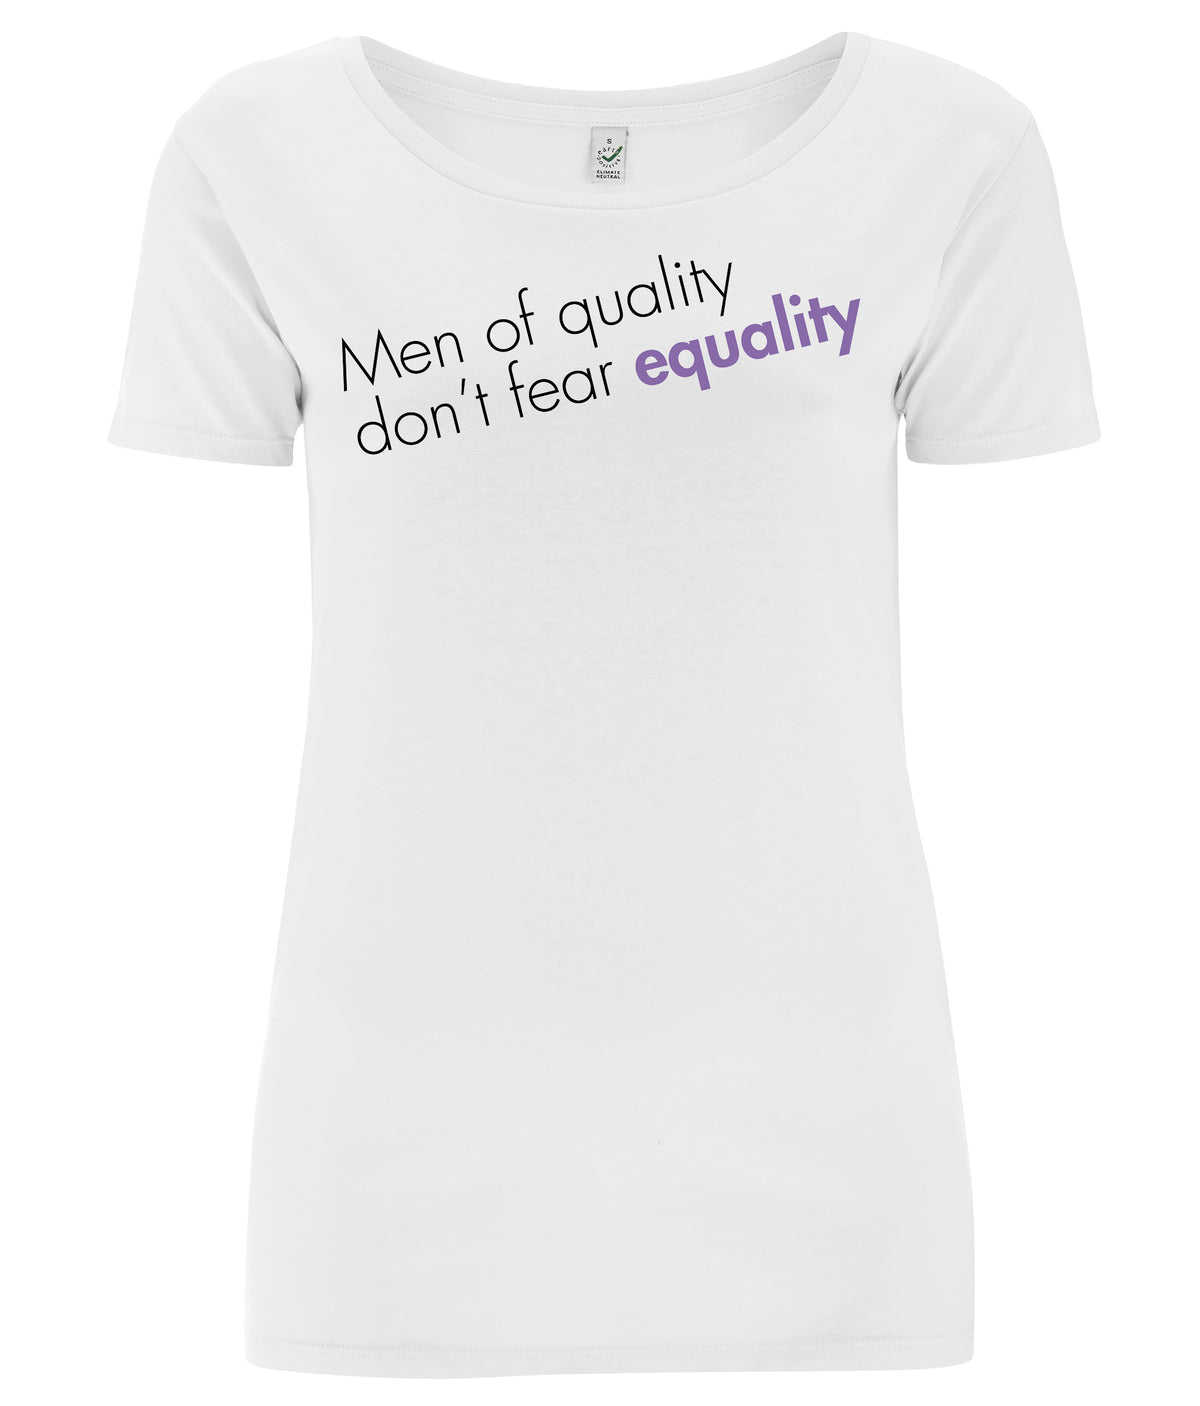 Men Of Quality Don't Fear Equality Open Neck Organic Feminist T Shirt White